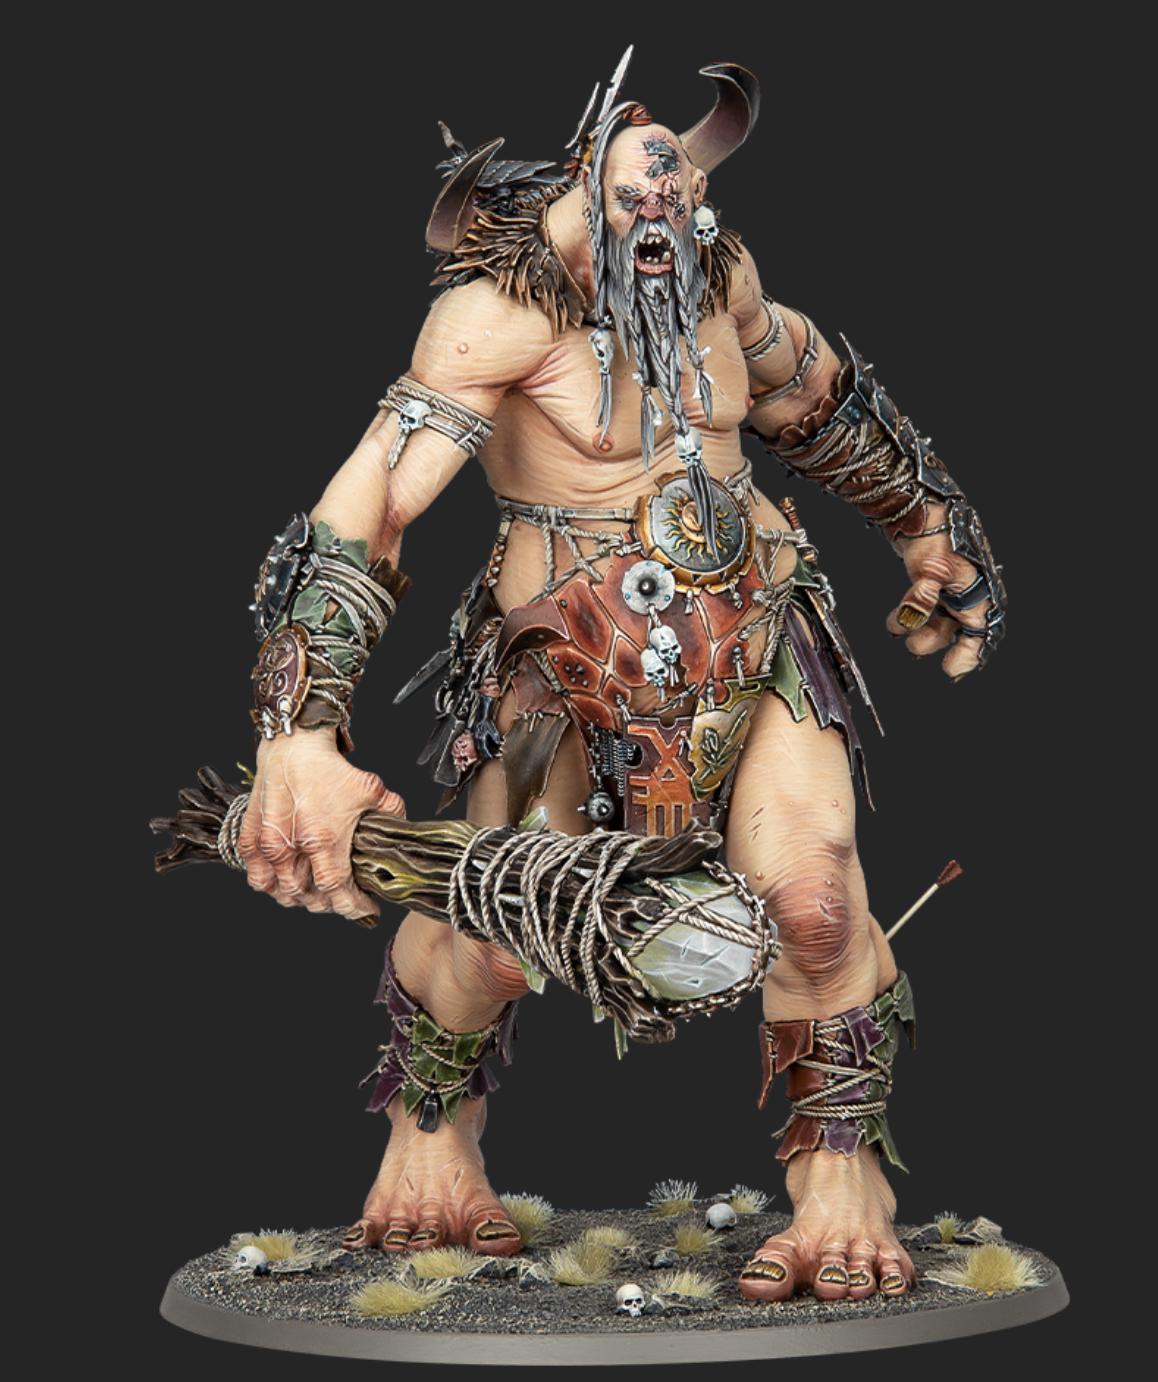 One of the new gargants miniature from the upcoming Sons of Behemat